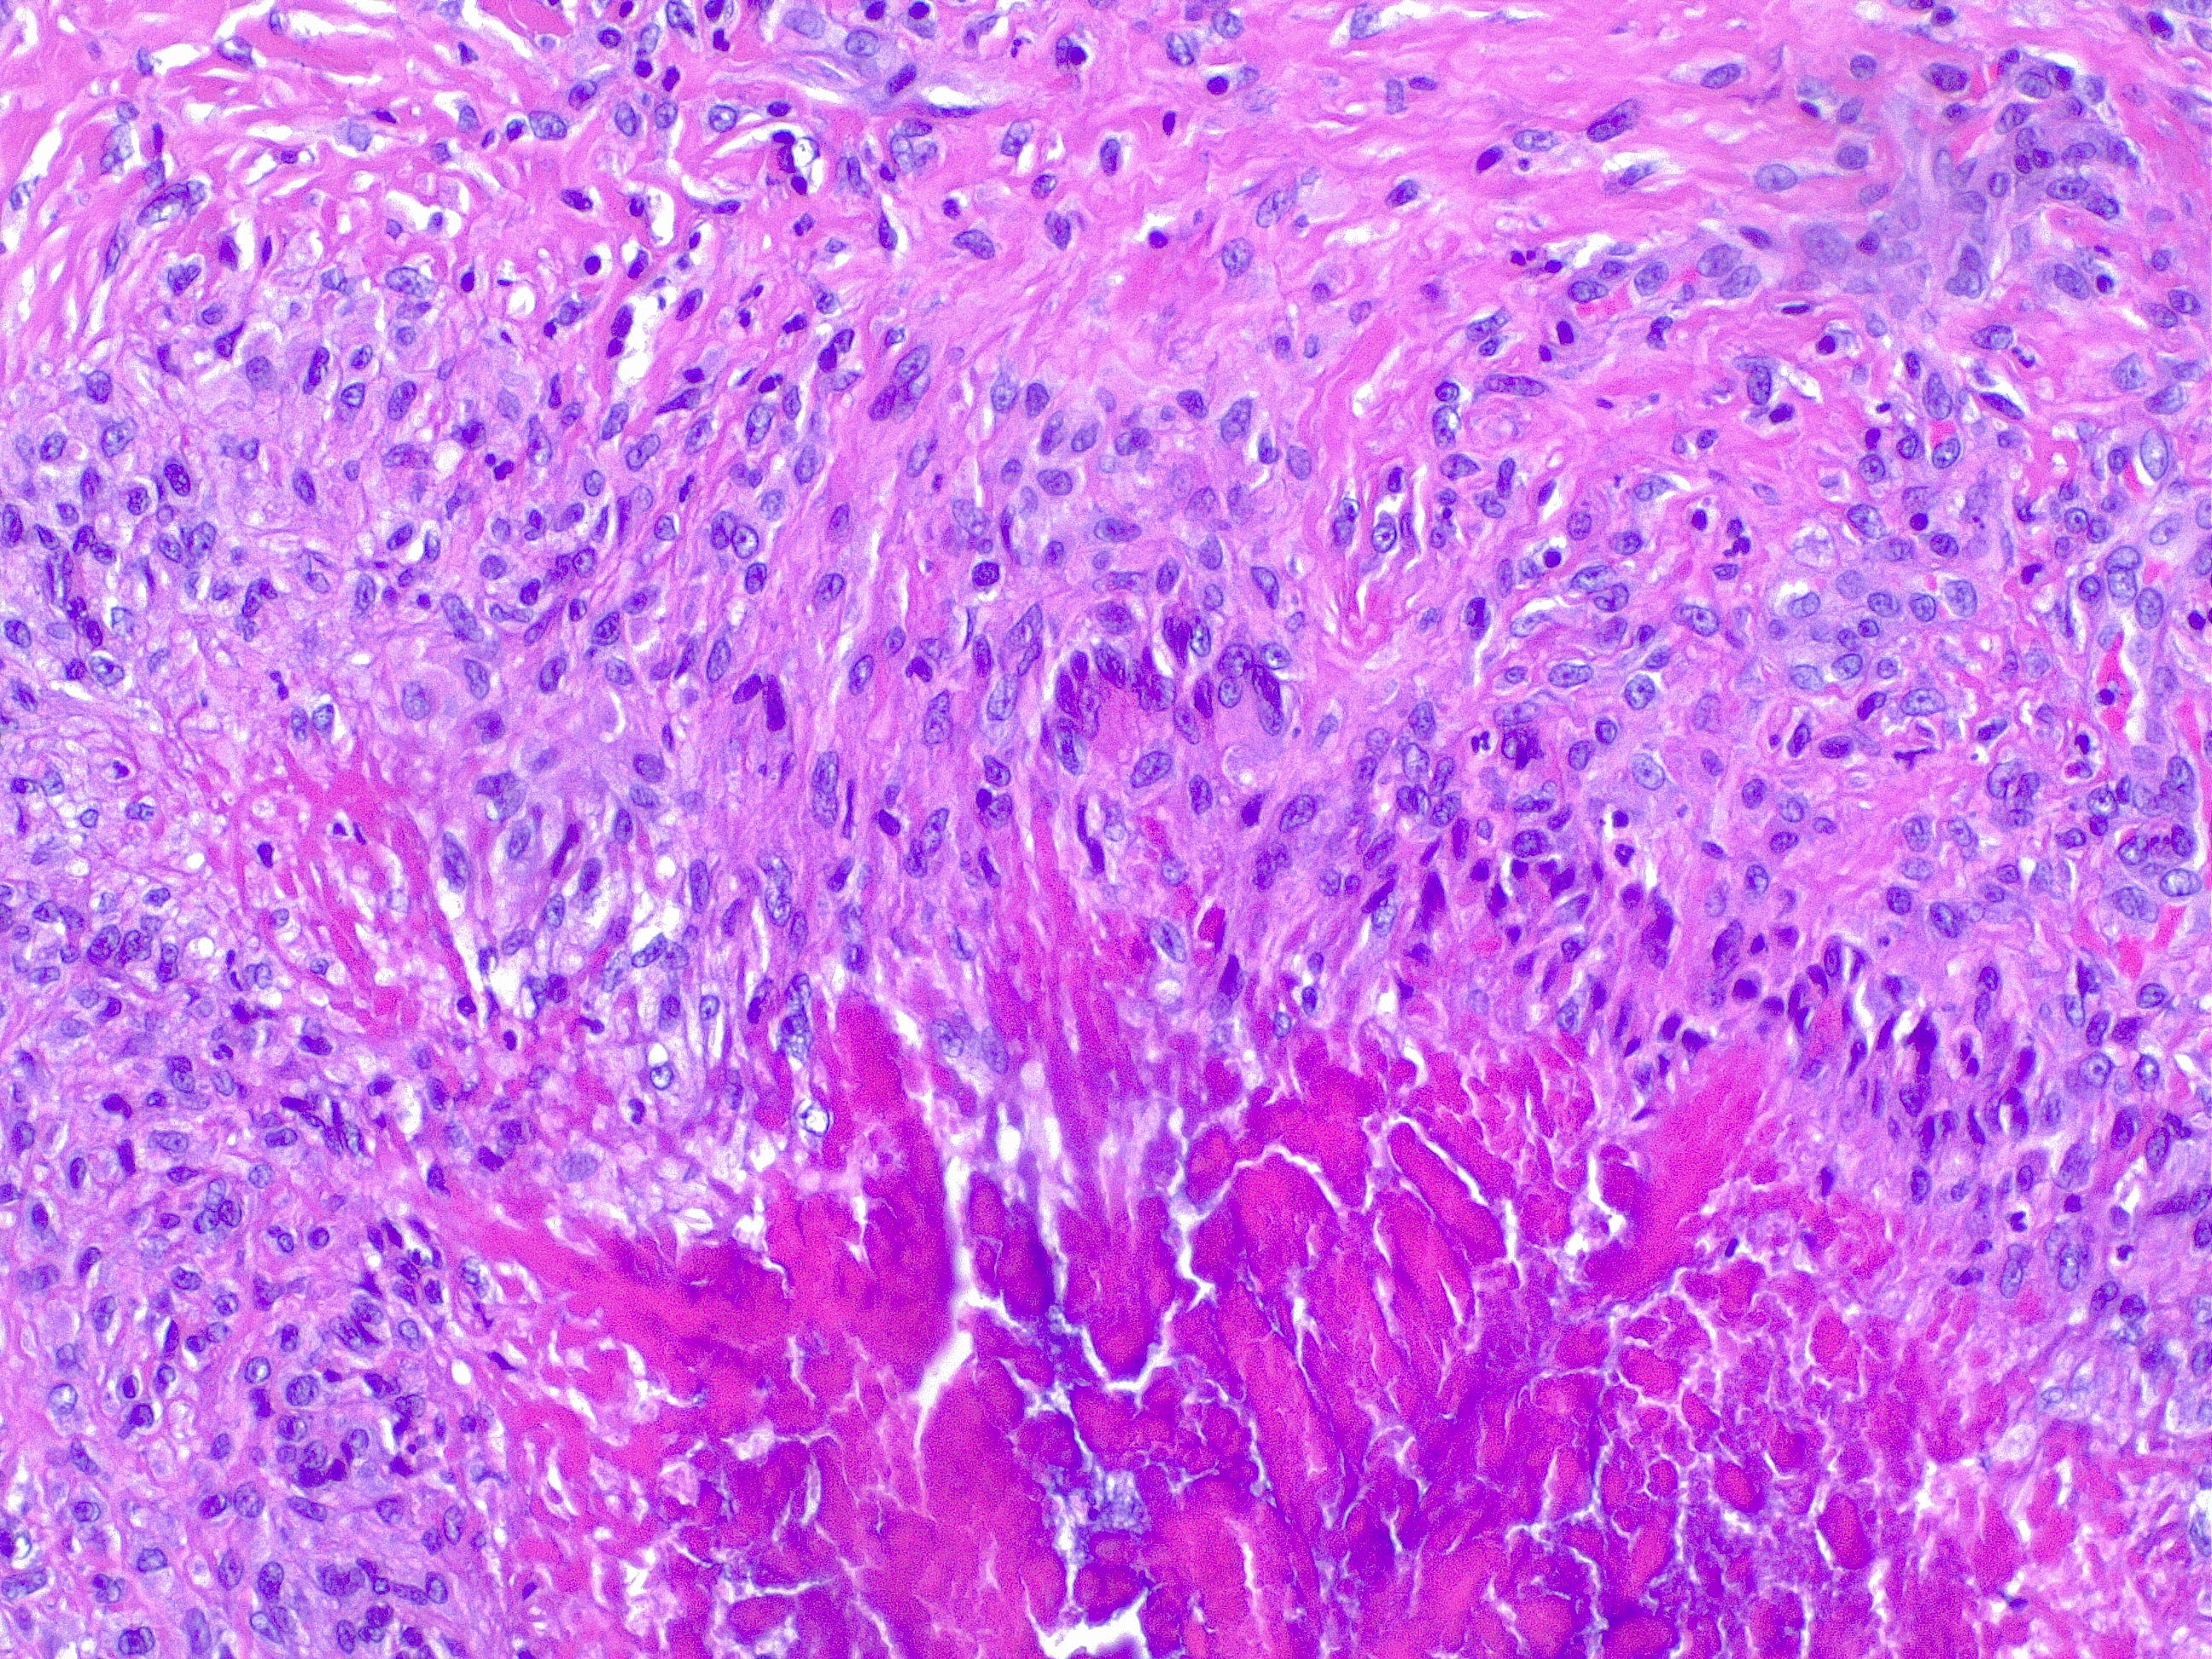 Granuloma annulare, H/E 20x. Palizading histiocytes and lymphocytes surround an area of necrobiotic collagen.